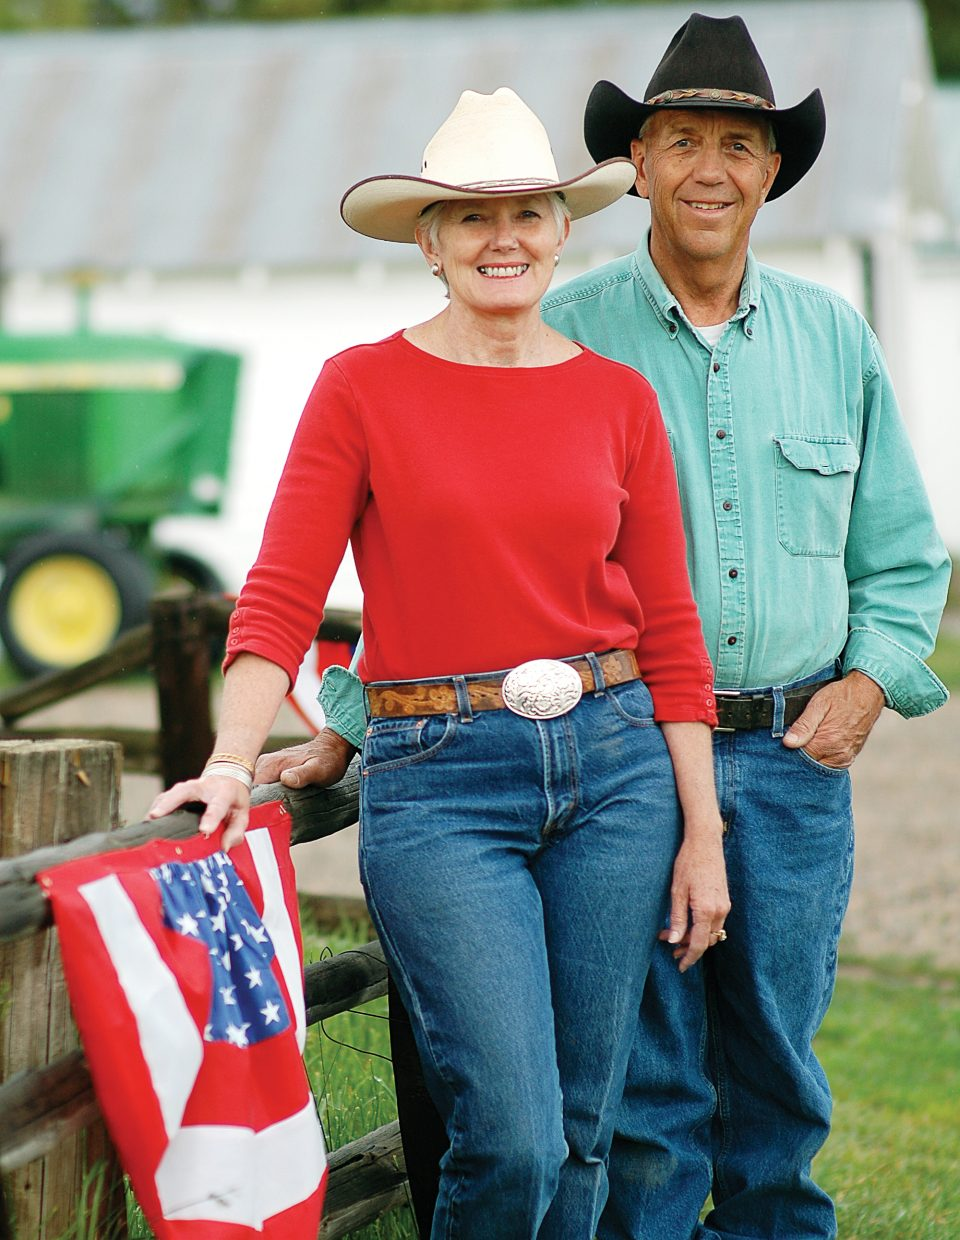 """Marsha and John Daughenbaugh have long since settled into daily routines on the ranch they've worked for 38 years. Marsha Daughenbaugh said John """"does the organizing for the outdoors stuff"""" and she does """"all the bookwork and helps outside, as well."""" They got some time off the ranch here, as grand marshals of the 2009 Fourth of July Parade in downtown Steamboat Springs."""